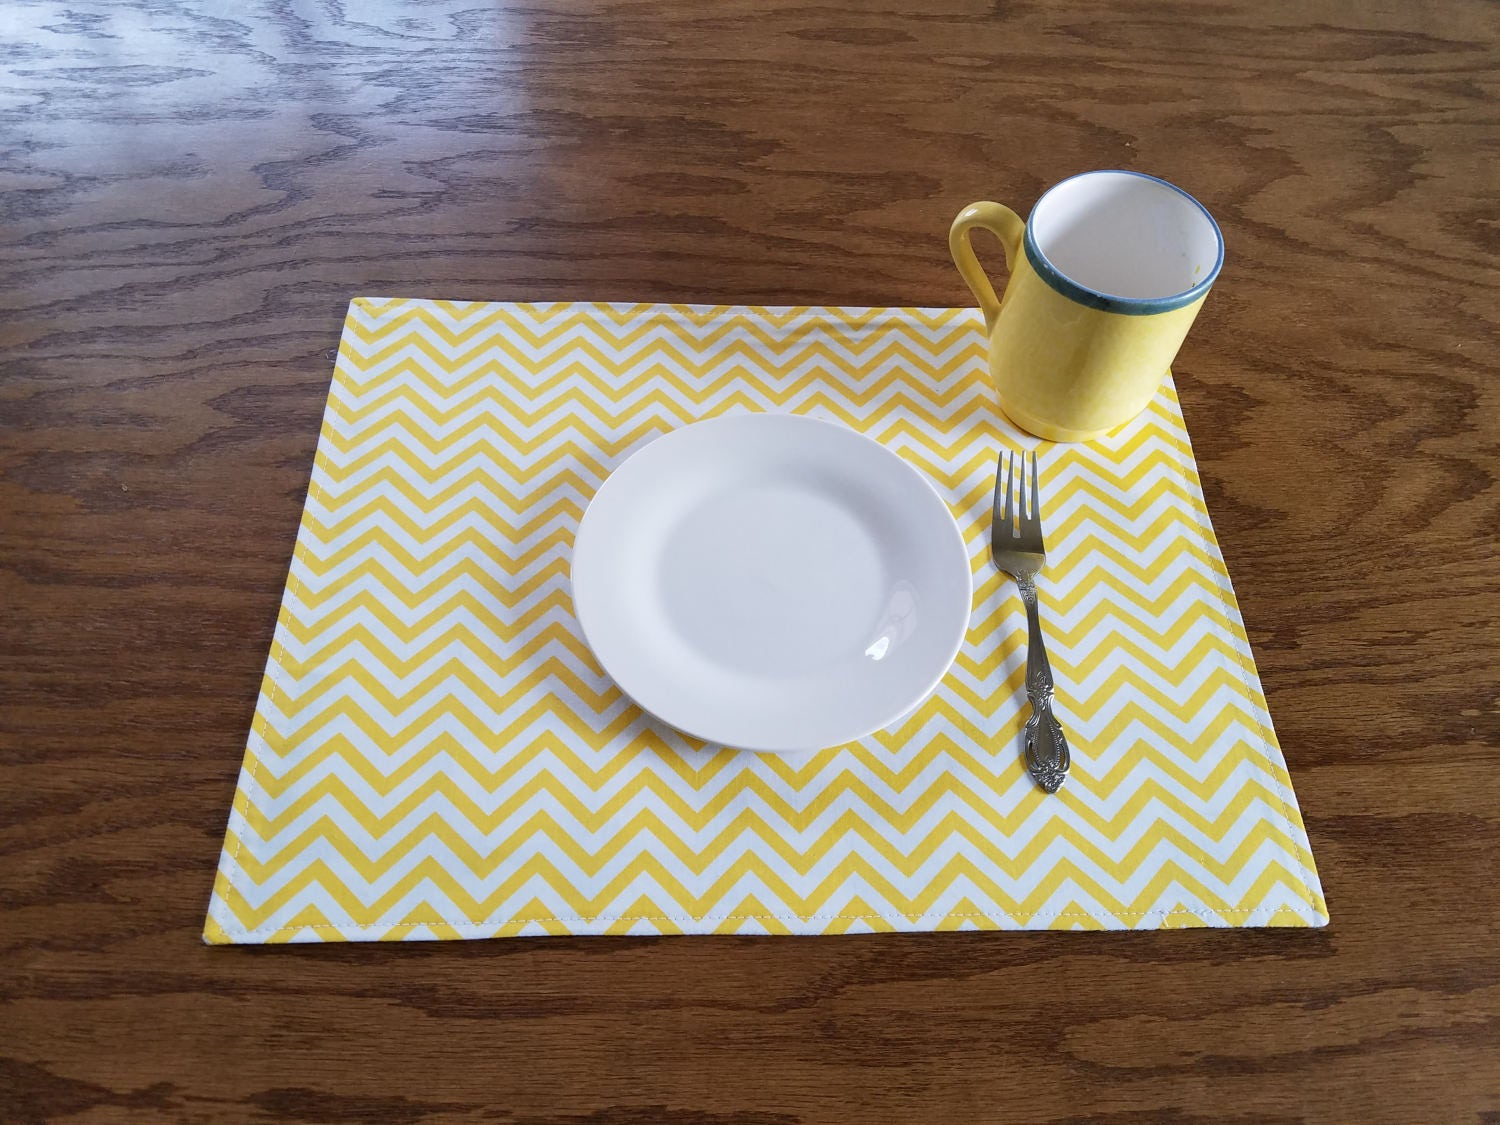 Handmade table mats design - Sunflowers Chevrons Placemats Reversible Table Mats Dining Room Decor Linens Colorful Vibrant Gift Idea Handmade